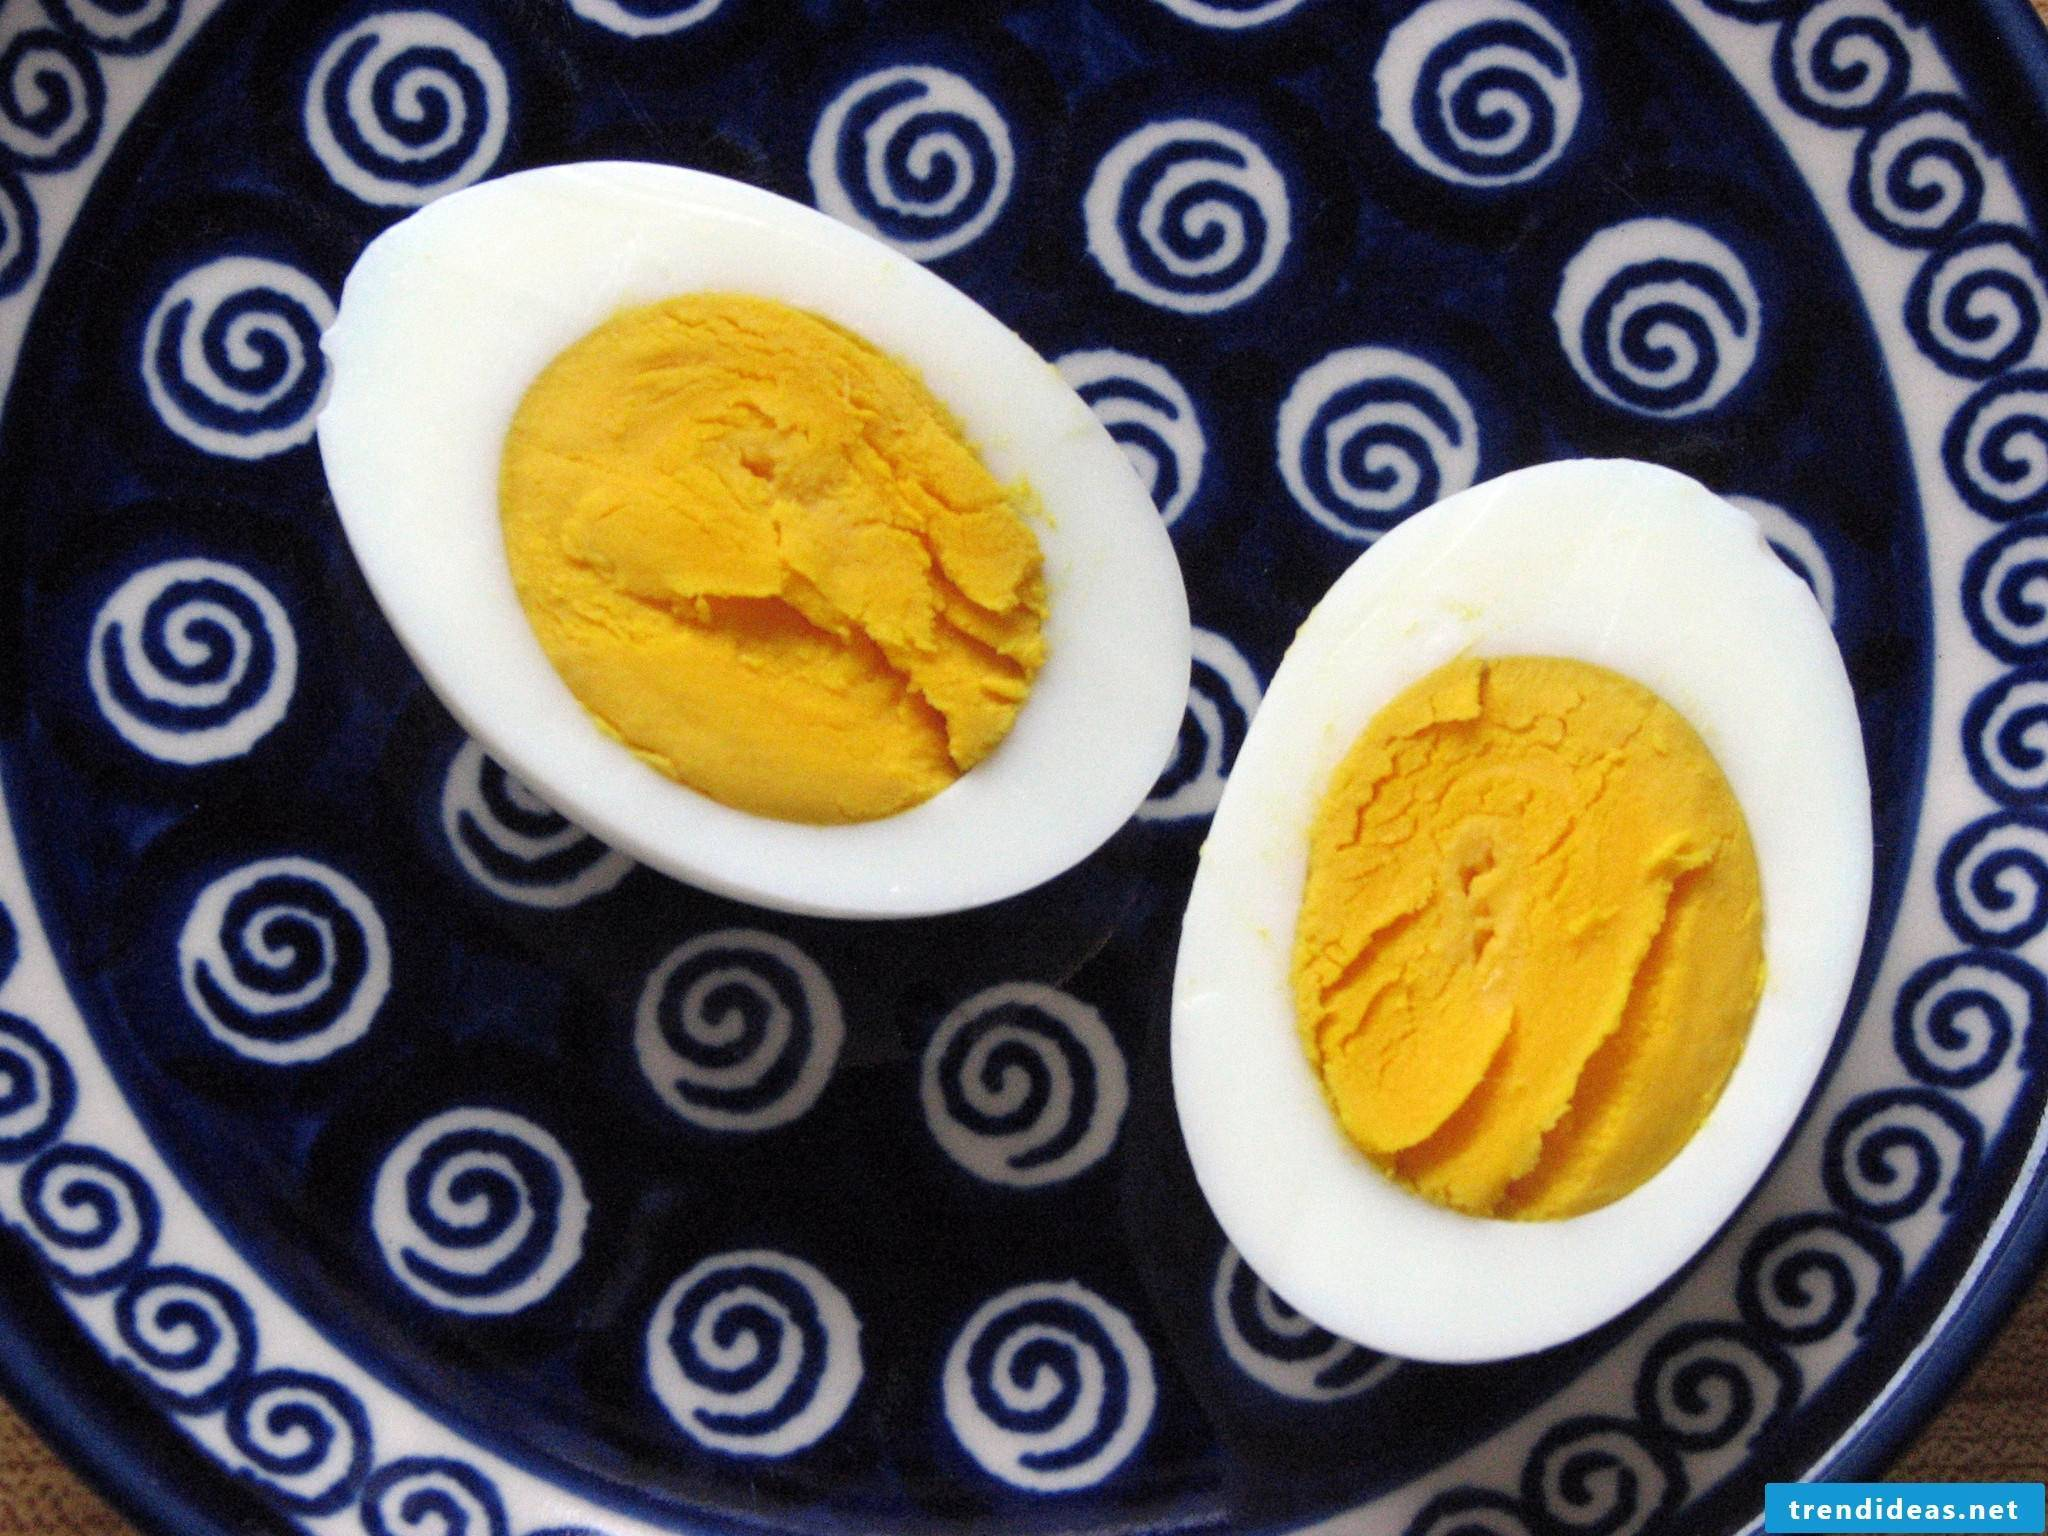 How do I make hard-boiled eggs?